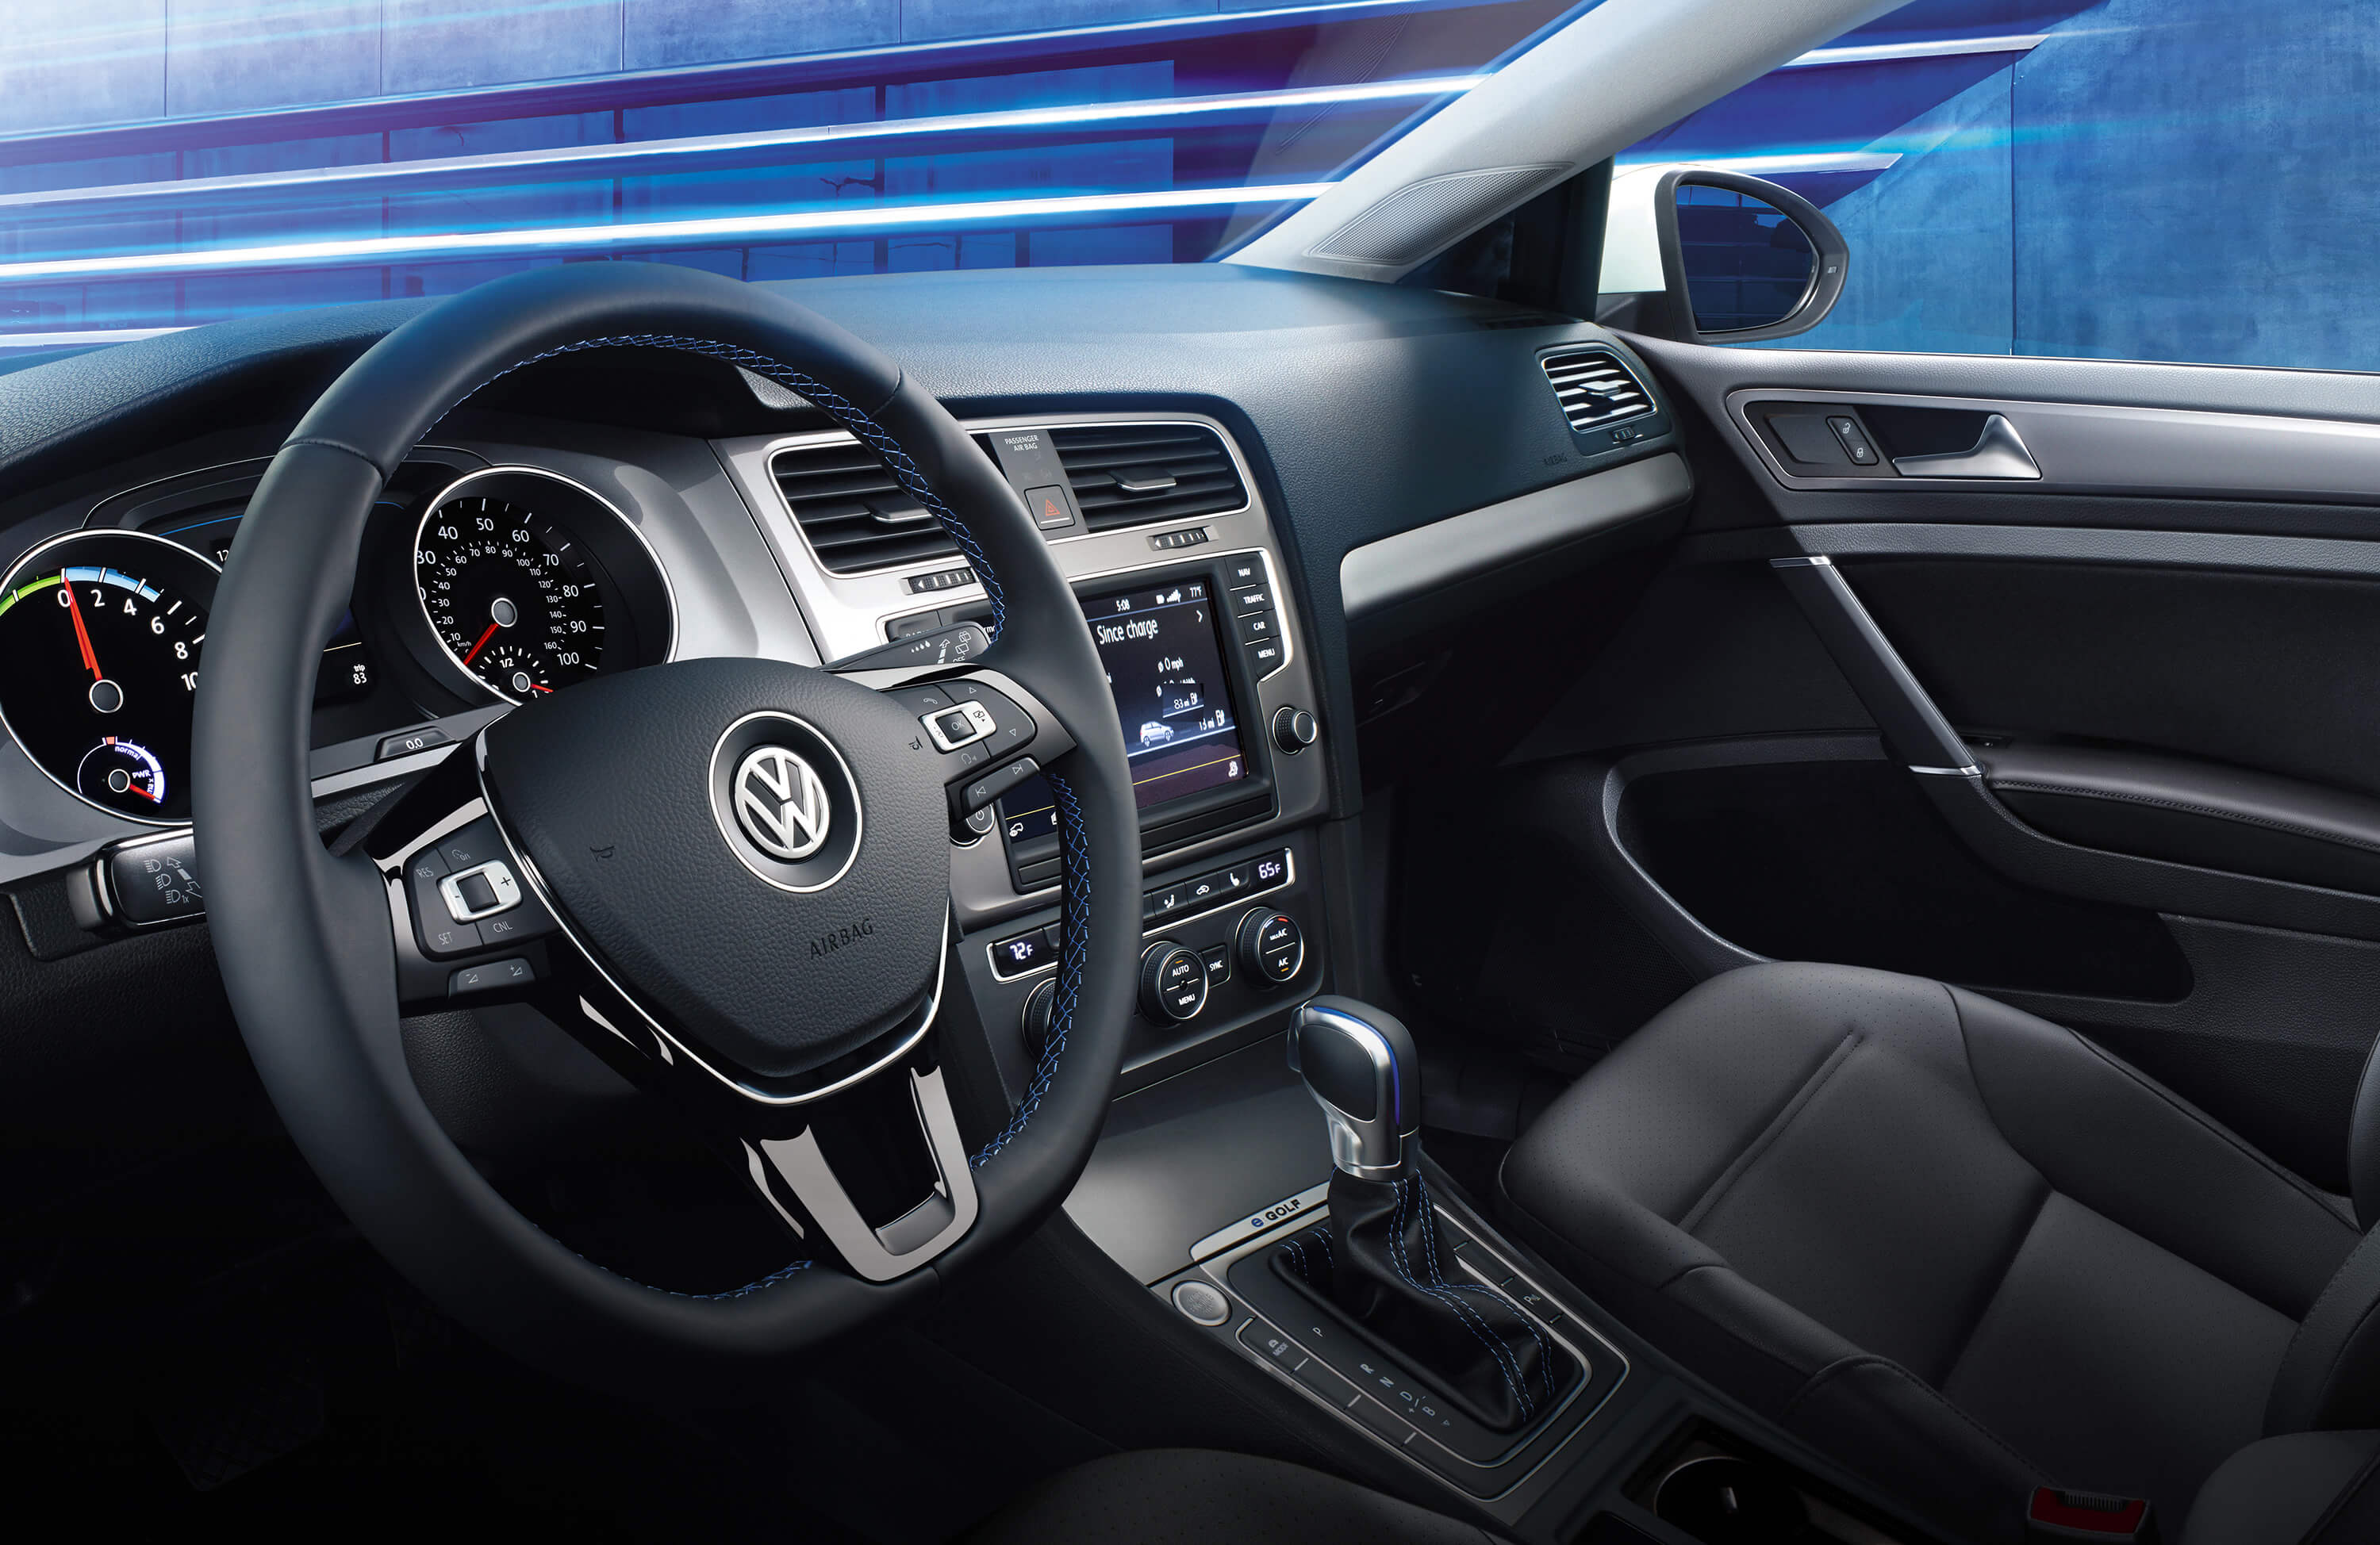 2016 Volkswagen e-Golf Cockpit Interior